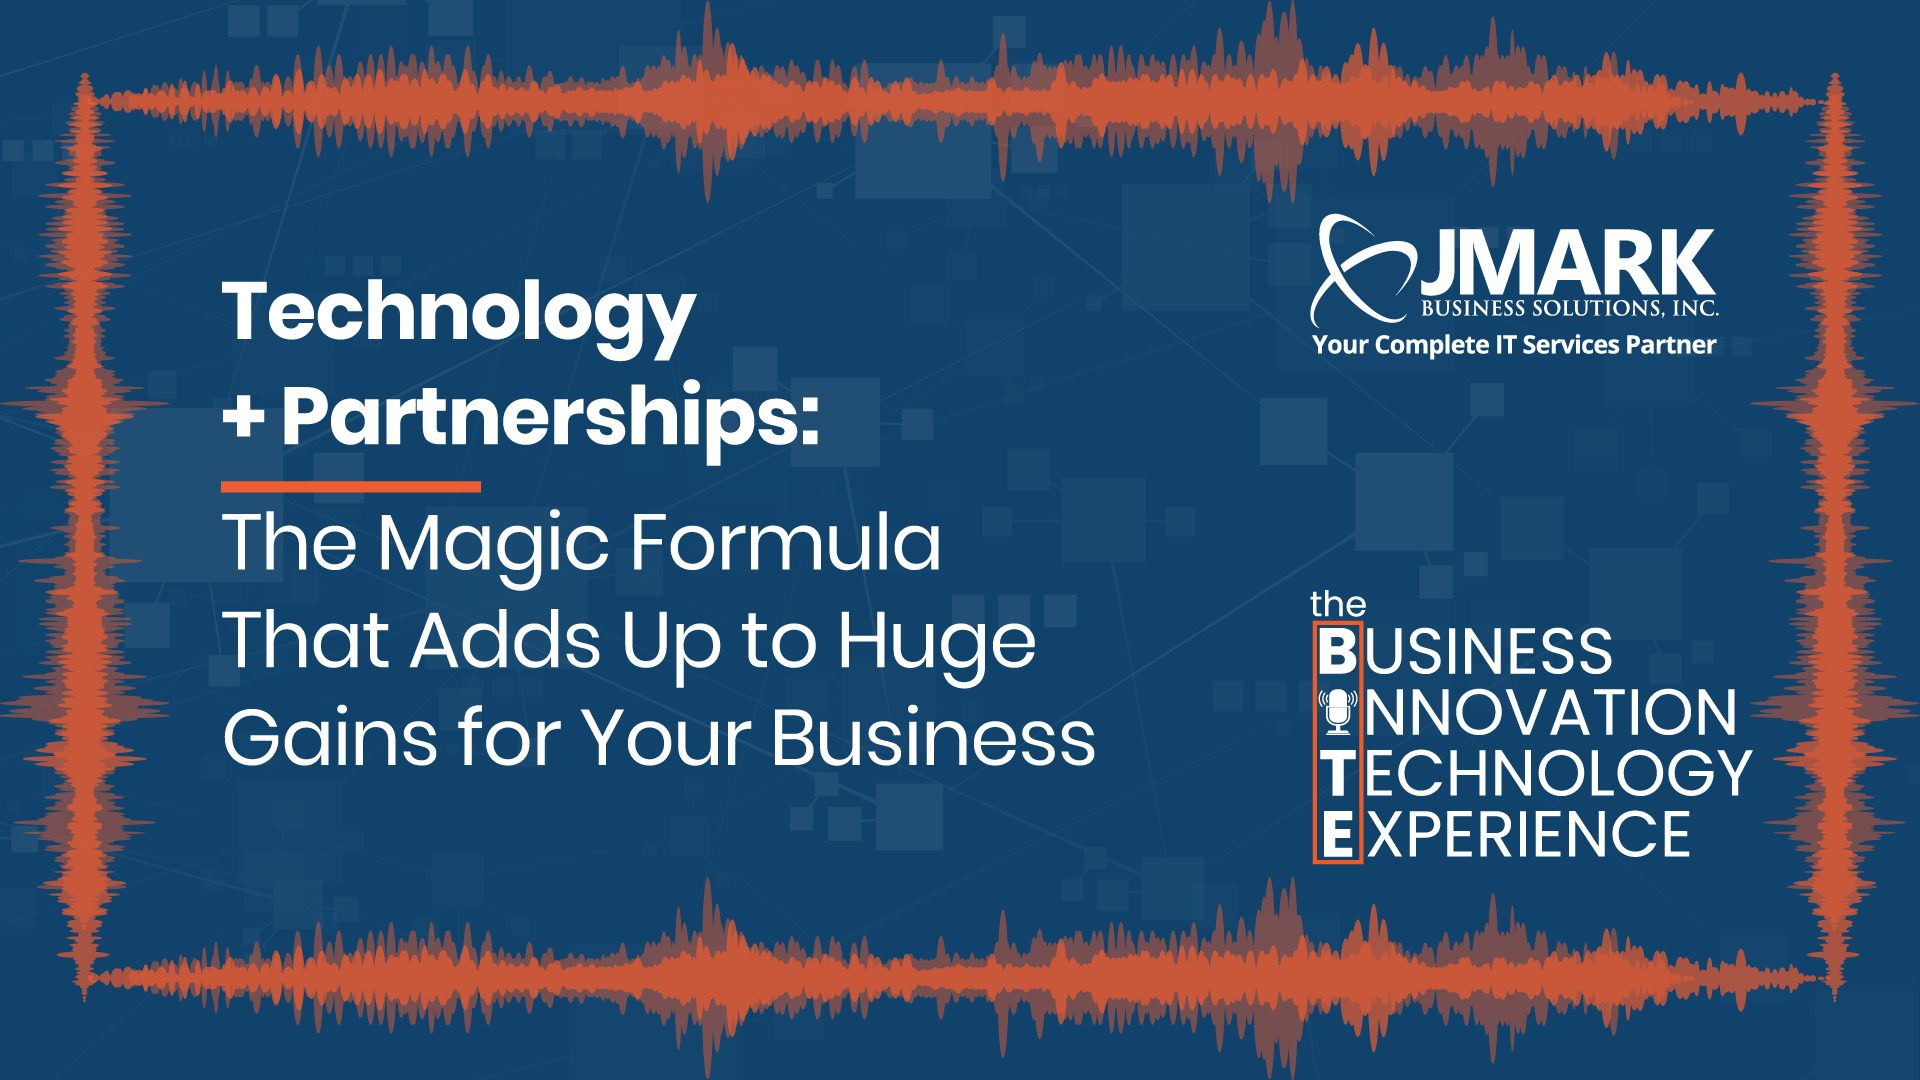 Technology + Partnerships: The Magic Formula That Adds Up to Huge Gains for Your Business